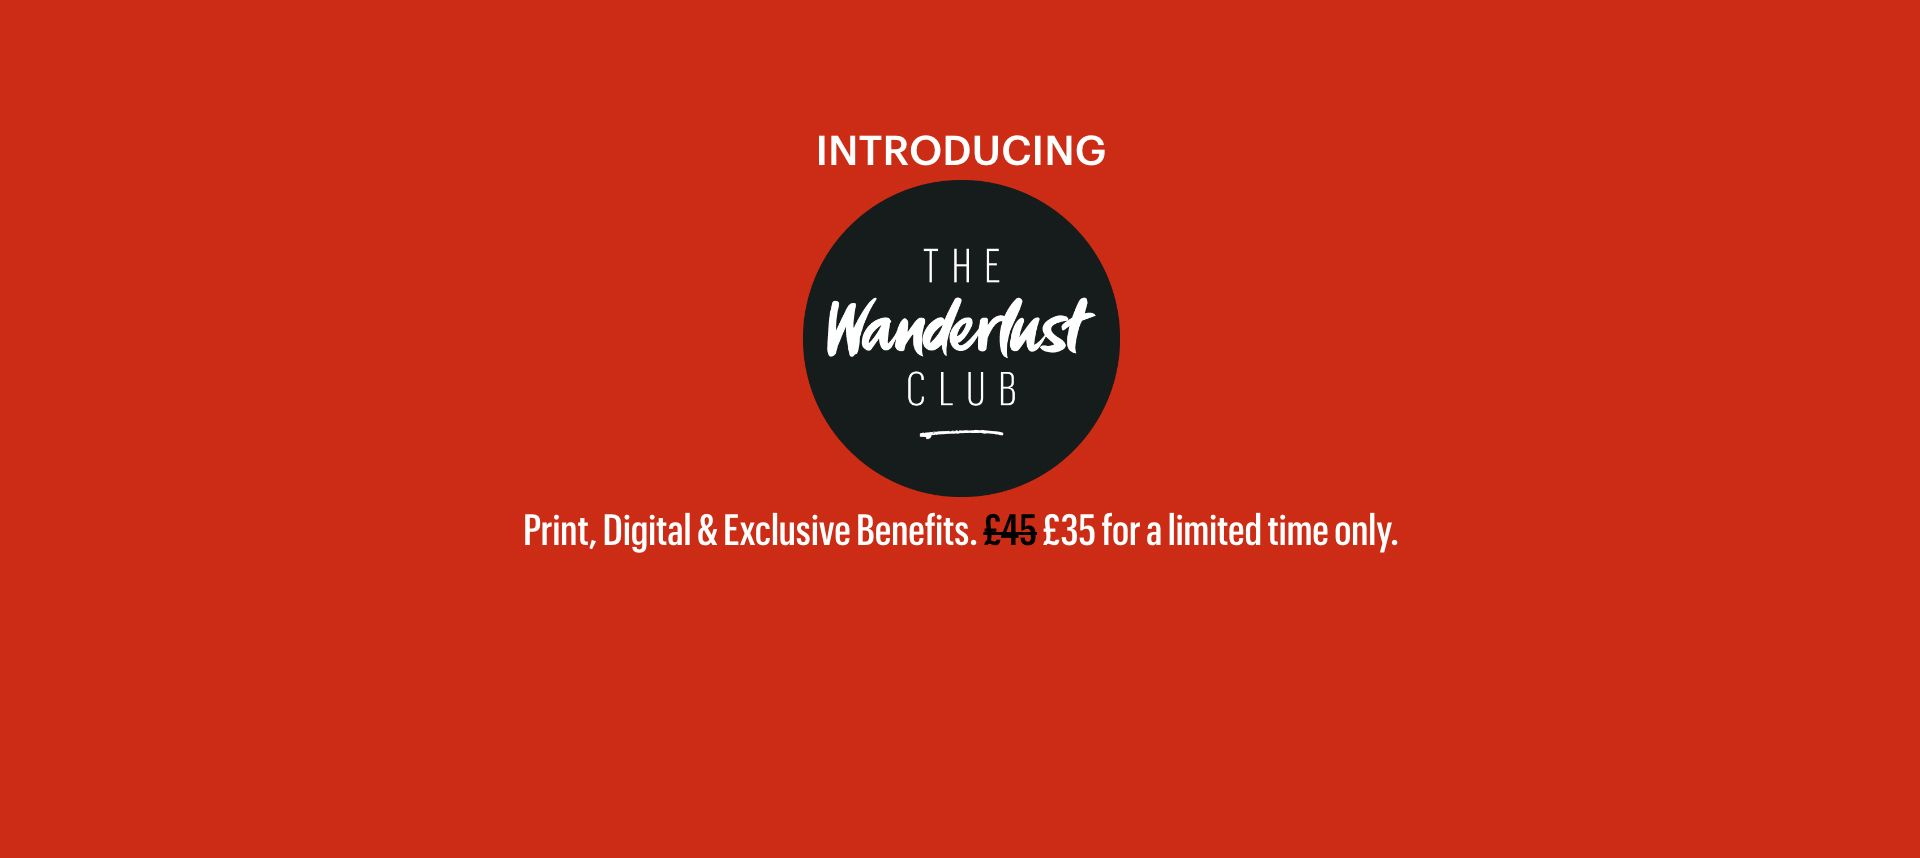 Introducing the Wanderlust Club